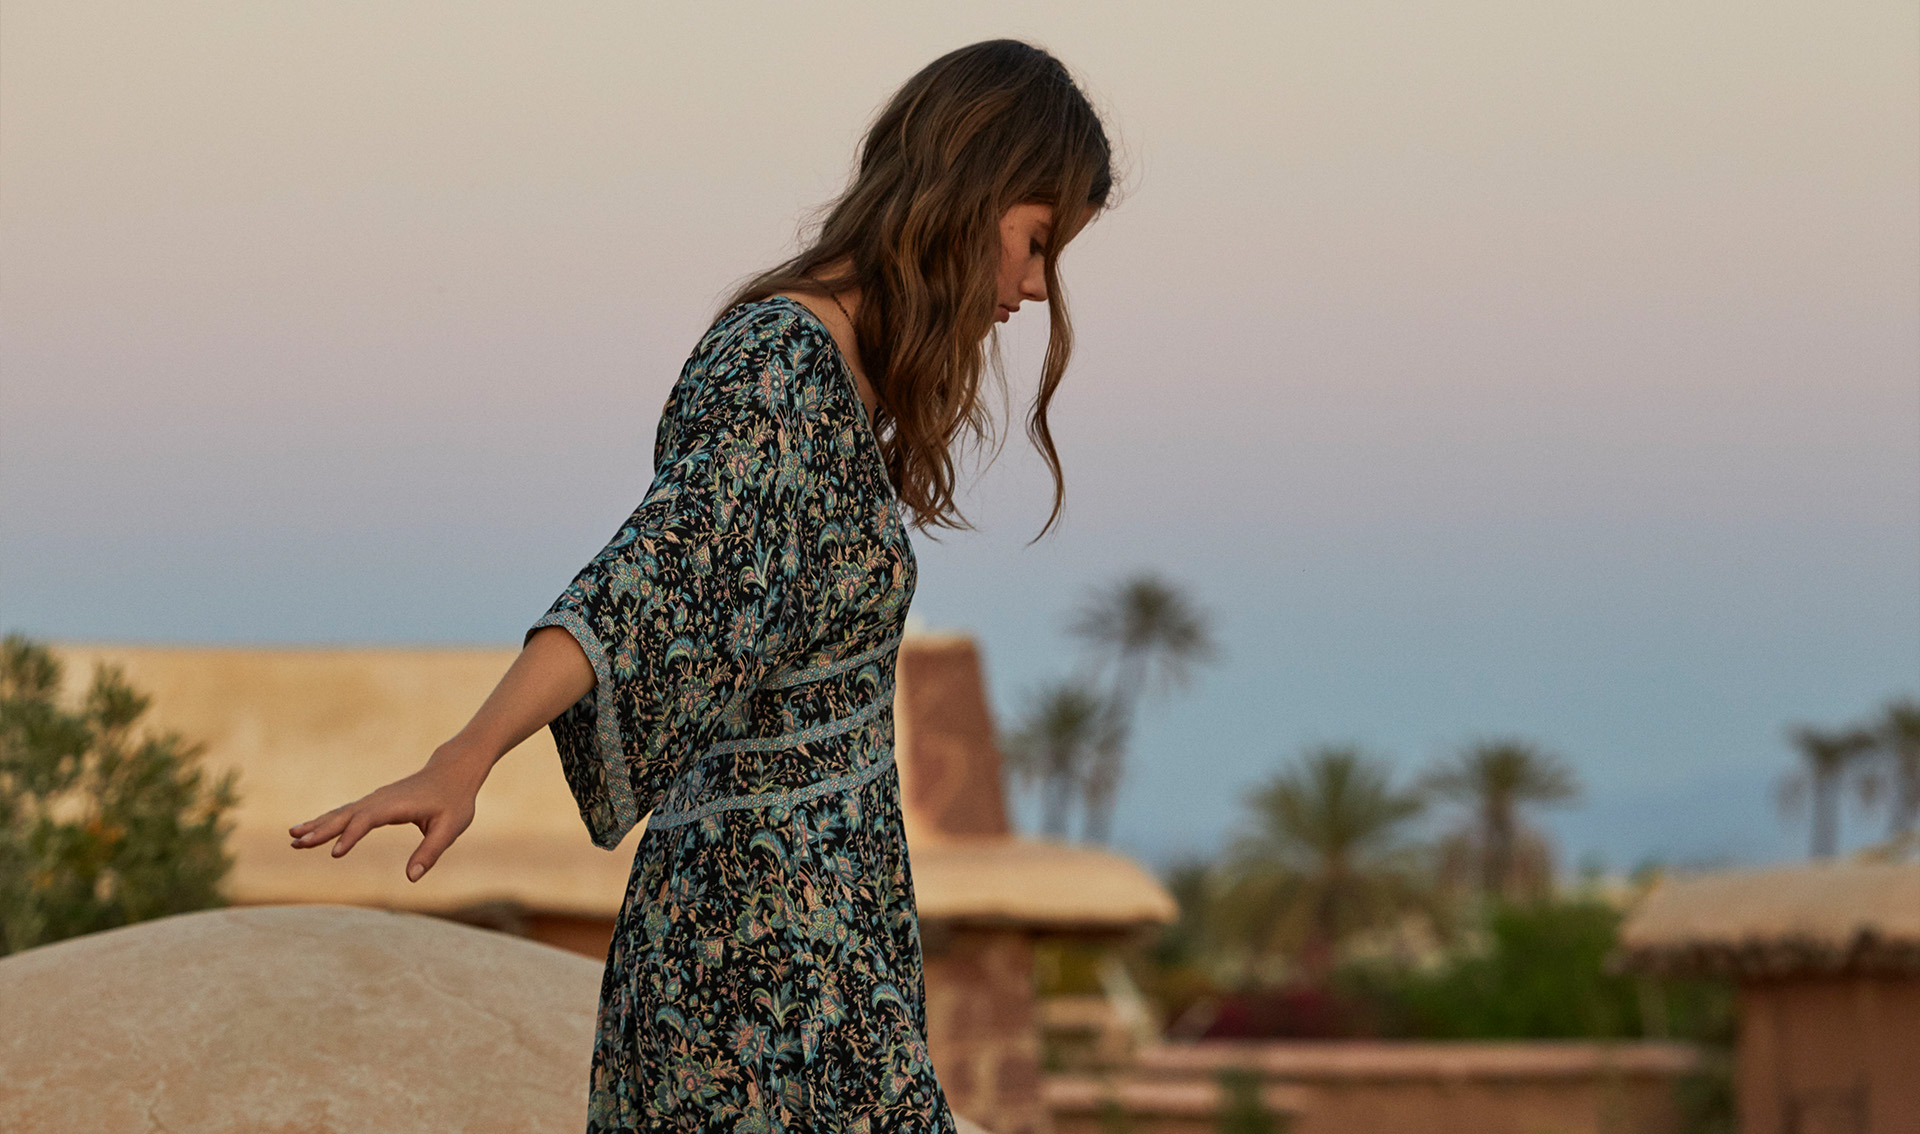 A woman walking, in the desert, wearing a printed backless maxi dress.